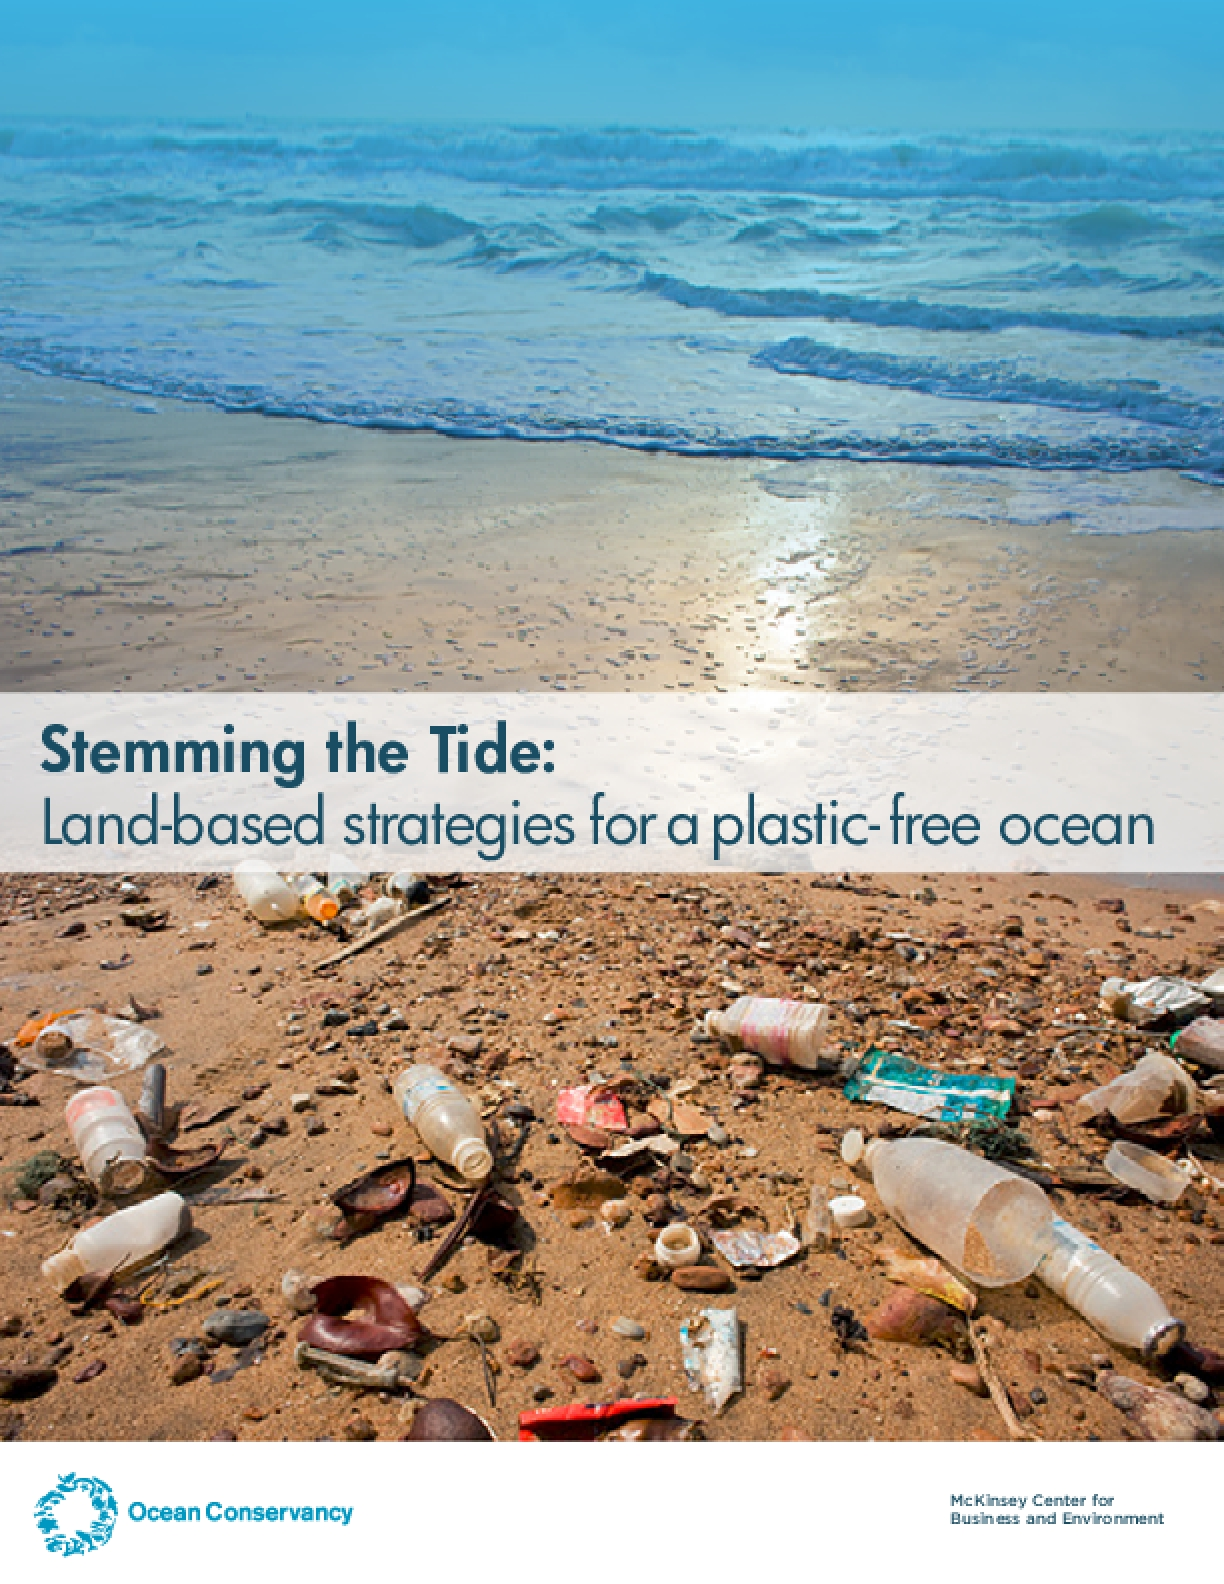 Stemming the Tide: Land-based strategies for a plastic free ocean